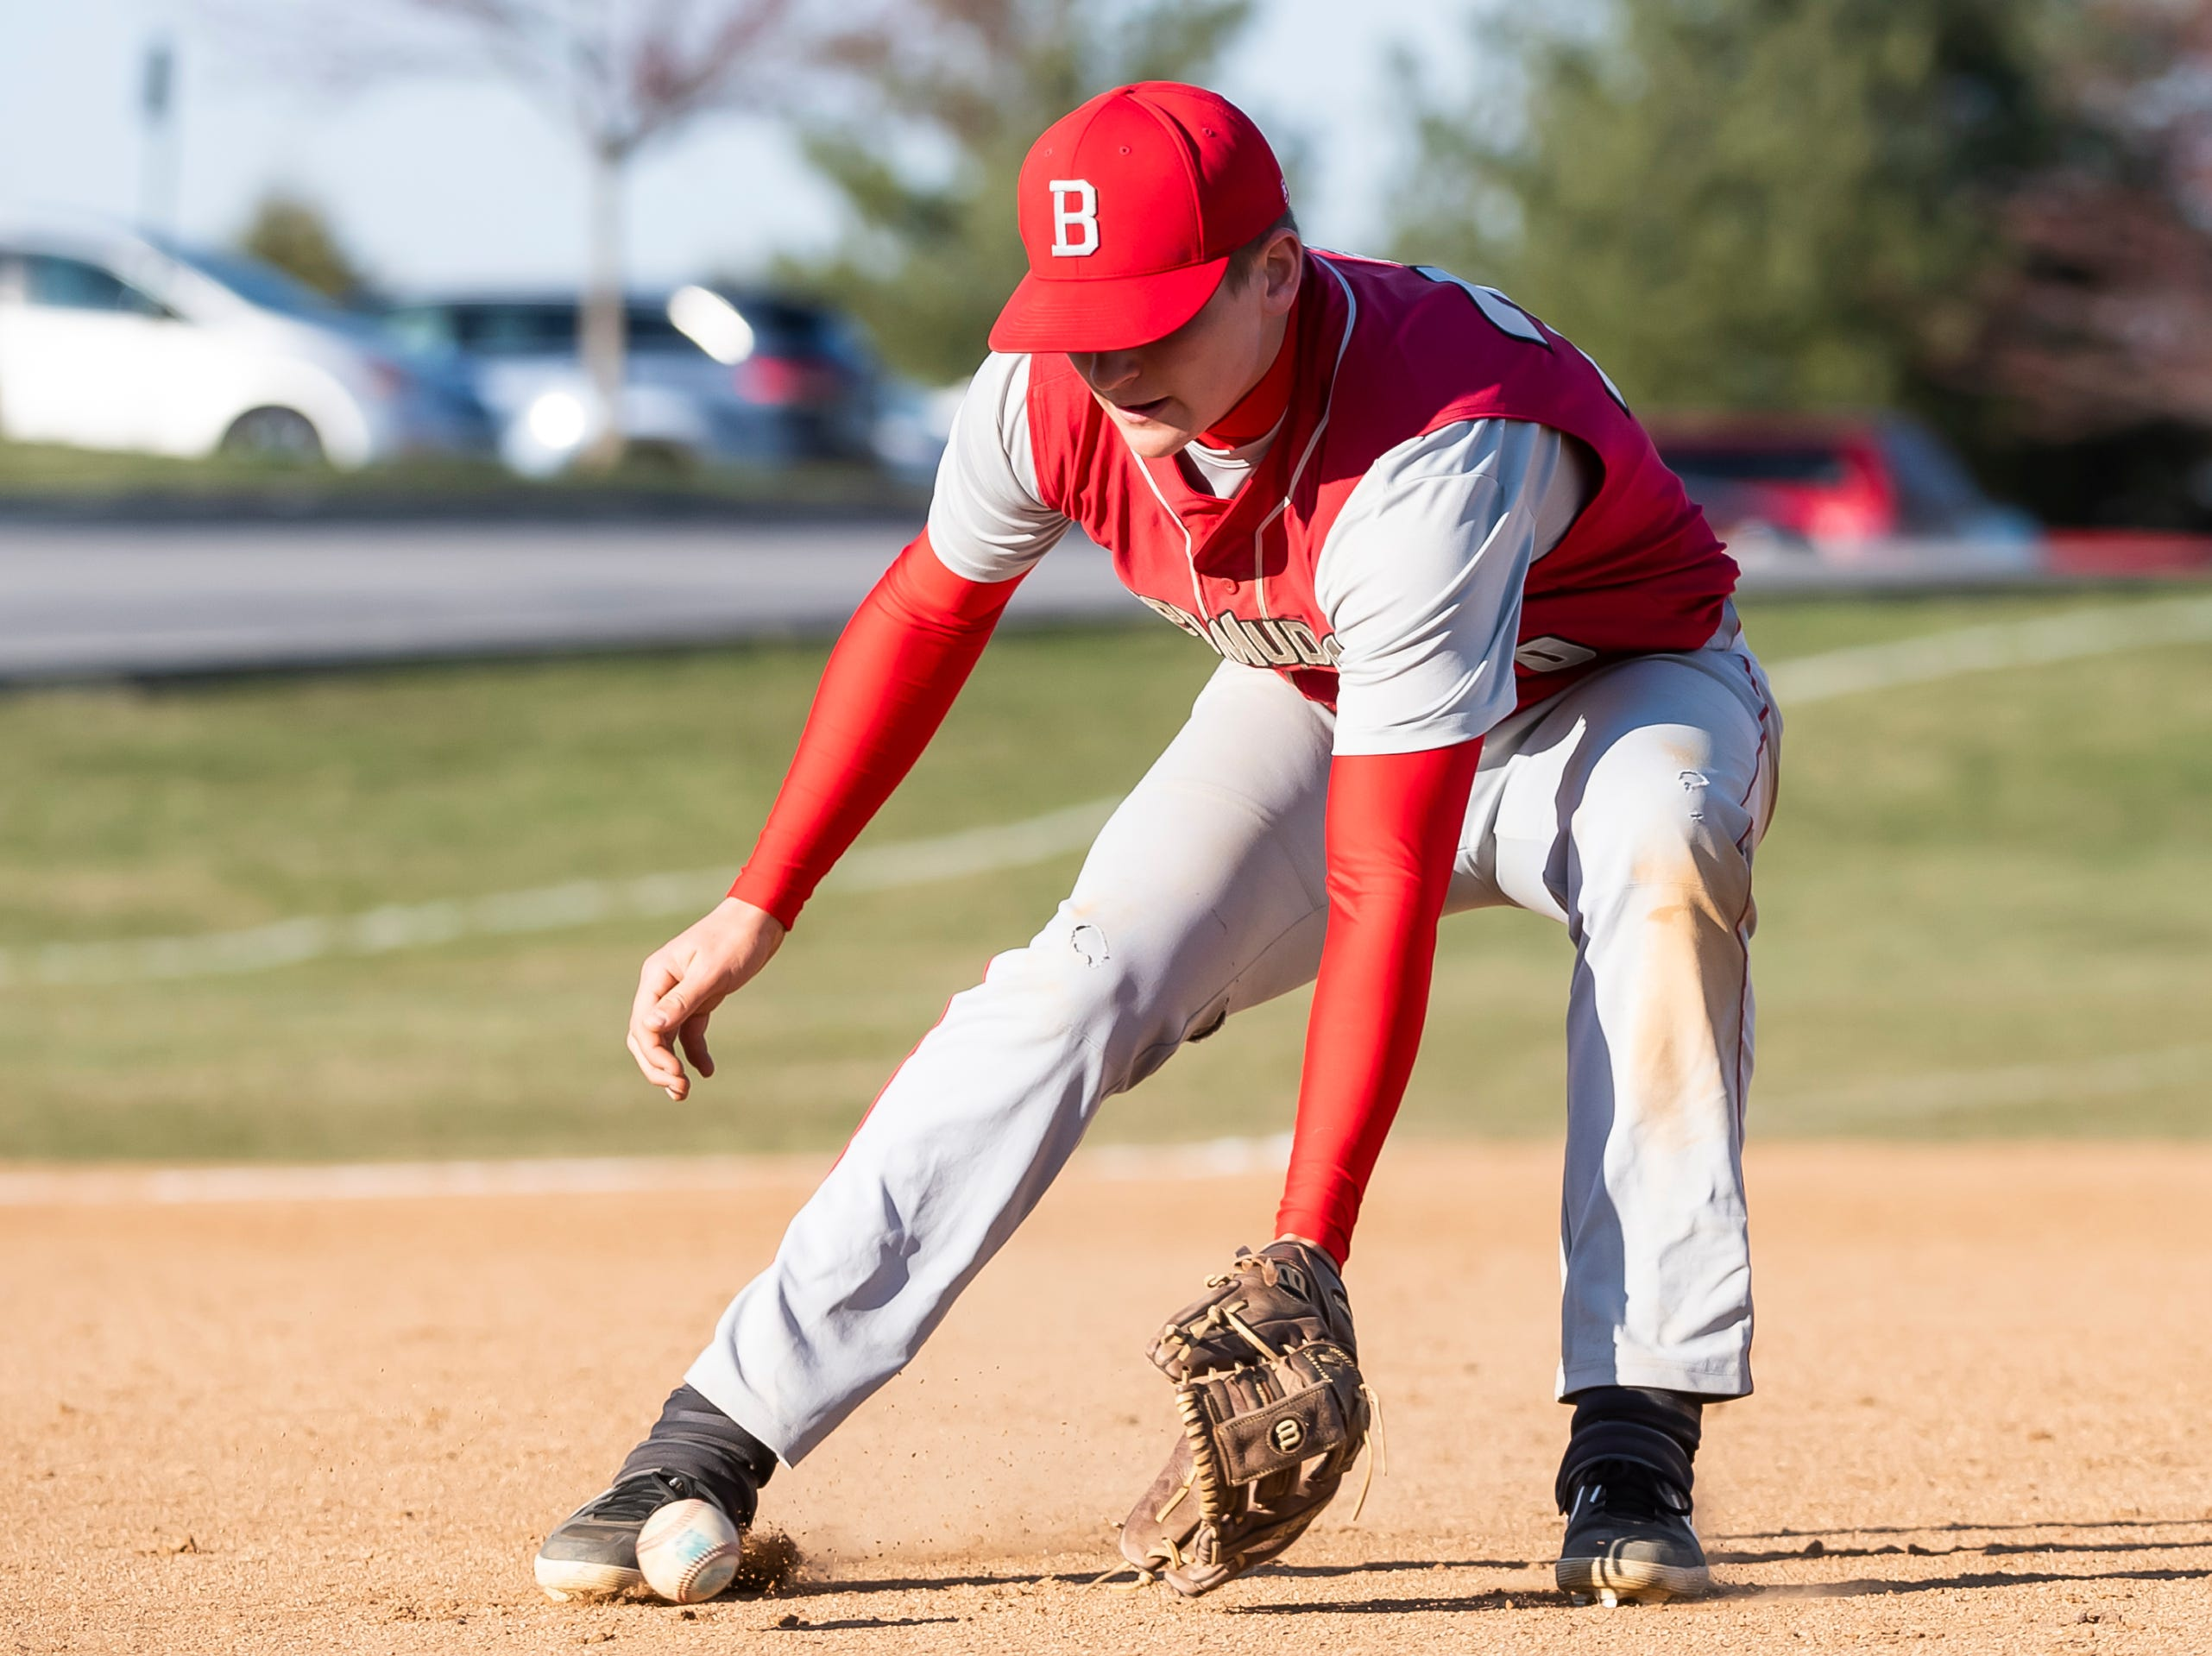 Bermudian Springs' pitcher Tyler Reinert scoops up a hit back to the mound during a YAIAA baseball game against West York on Wednesday, April 3, 2019. The Eagles fell 14-11.